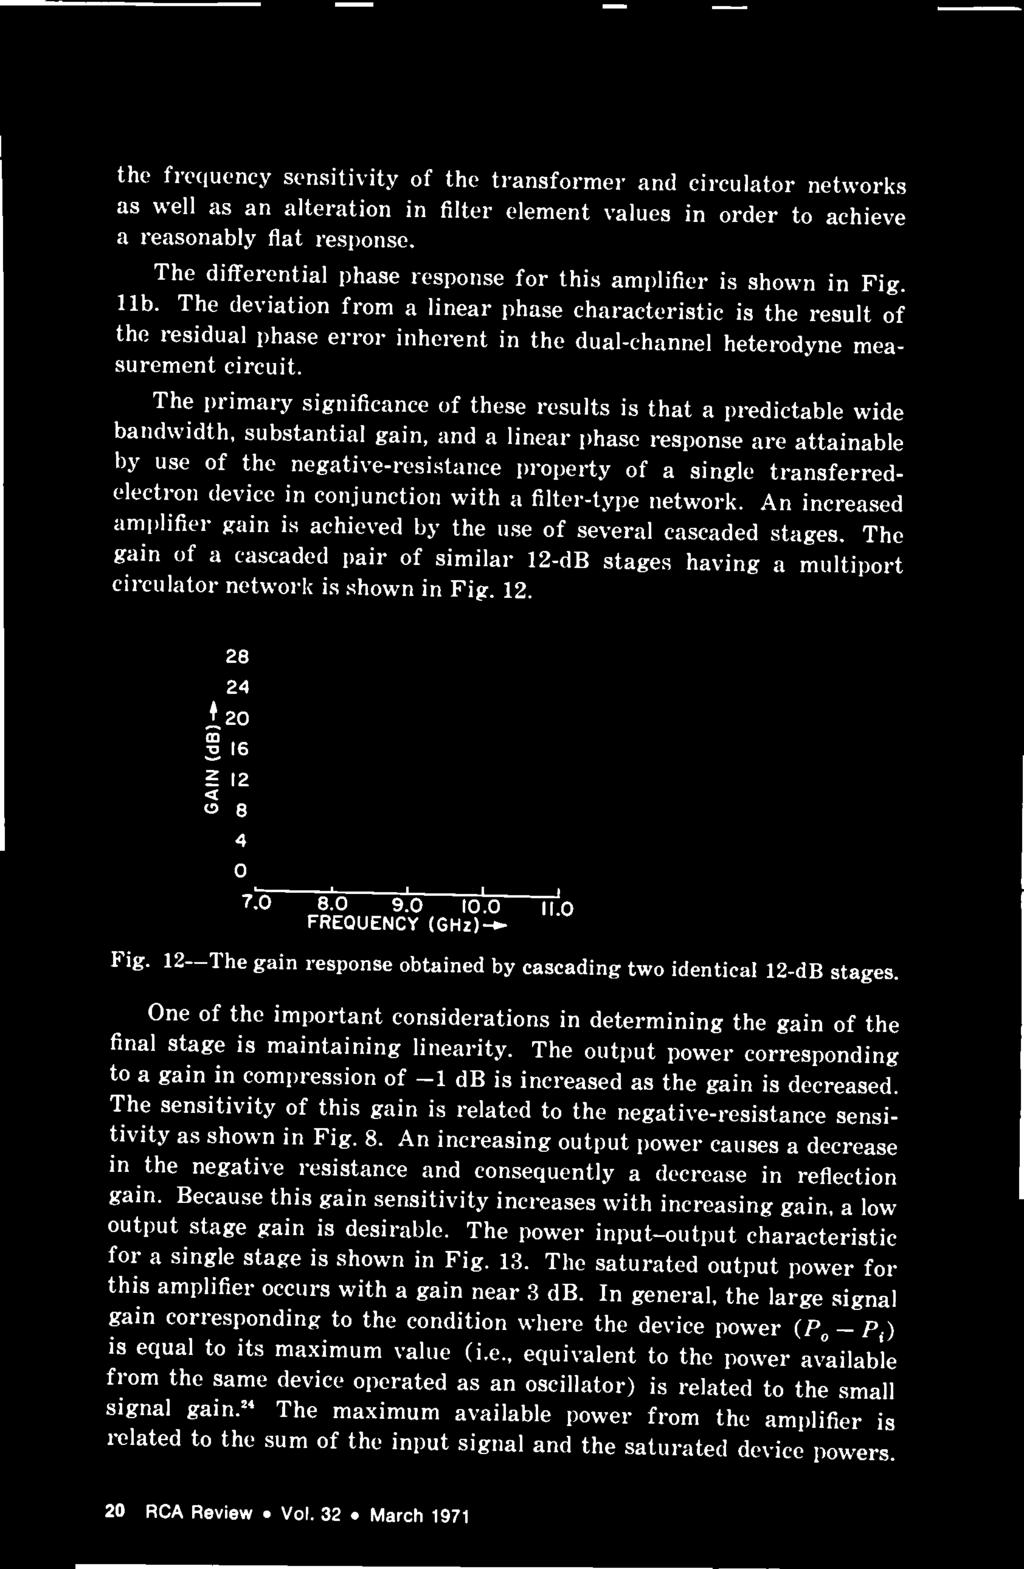 Review Mcbdo Contents March 1971 Volume 32 Number 1 Pdf Rc Timing Circuit Simulates An Developer Andrew Duffy The Deviation From A Linear Phase Characteristic Is Result Of Residual Error Inherent